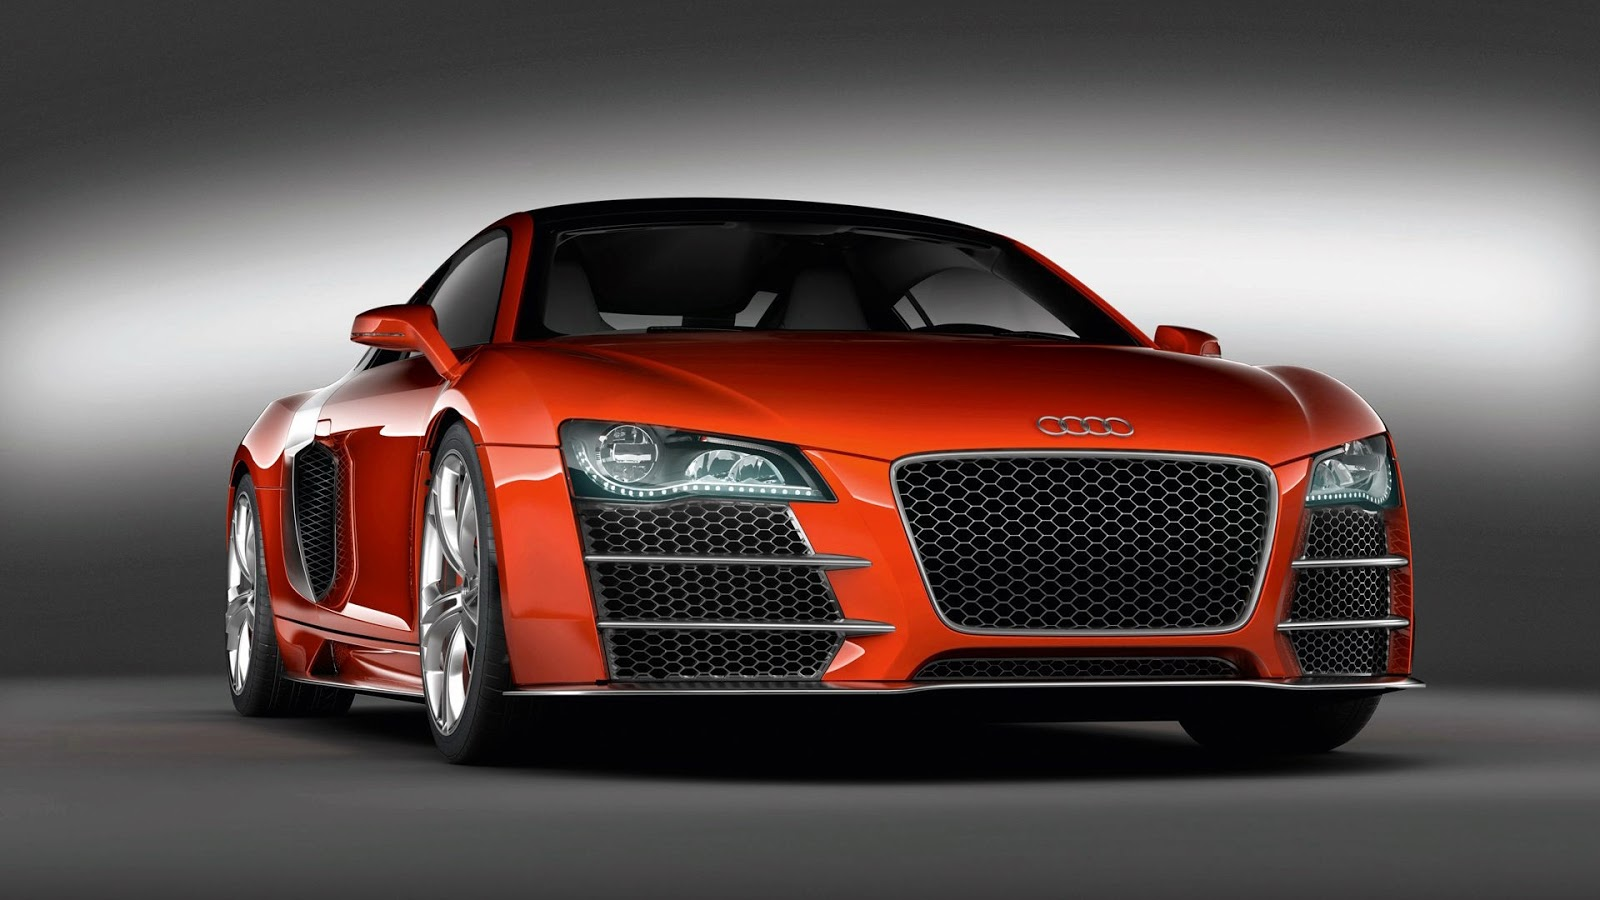 http://www.crazywallpapers.in/2014/03/audi-r8-hdtv-amazing-wallpapers.html